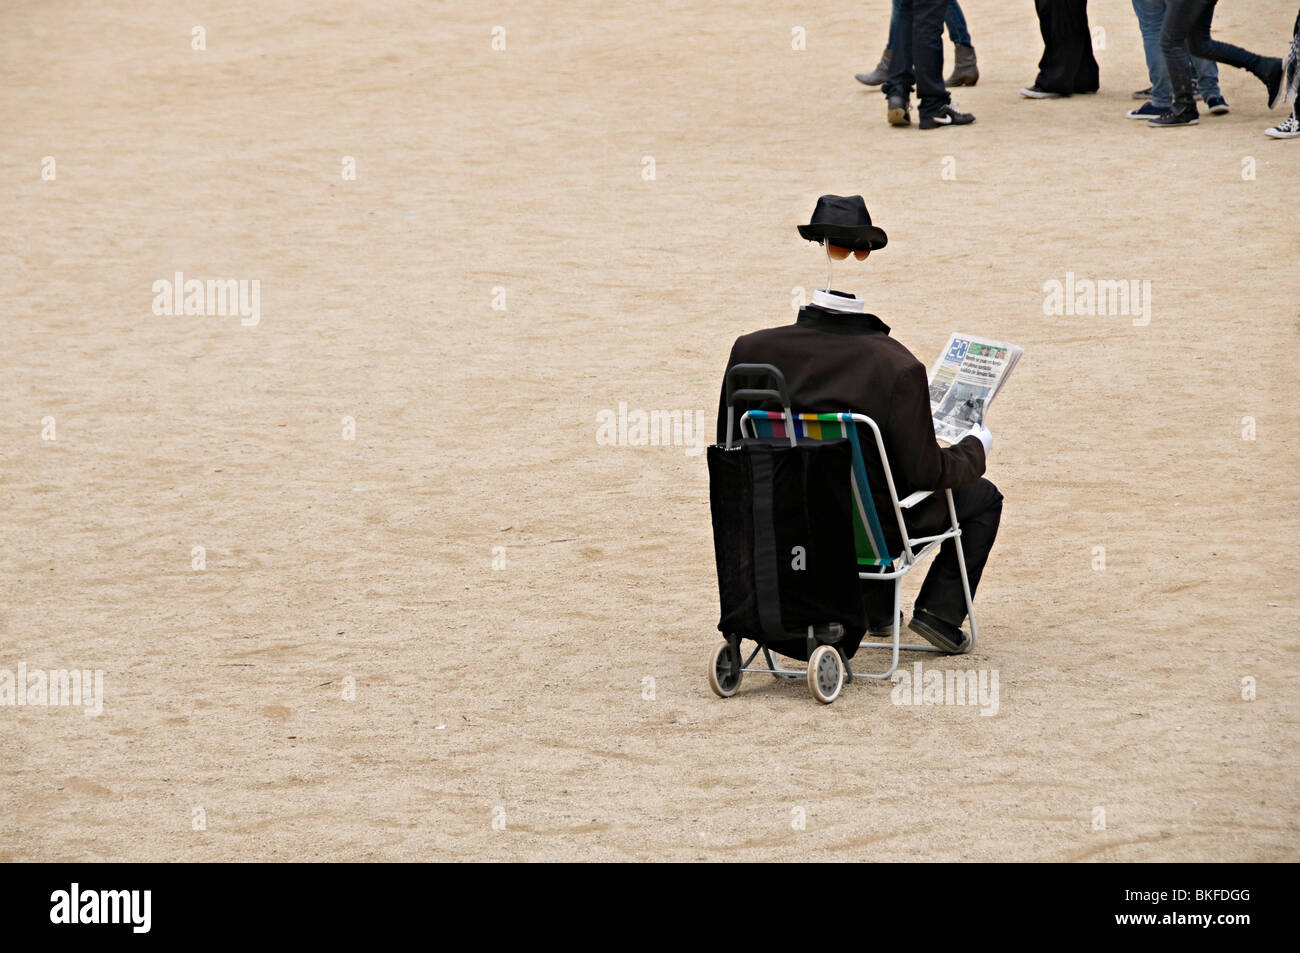 street performer in park guell Barcelona as an invisible man - Stock Image